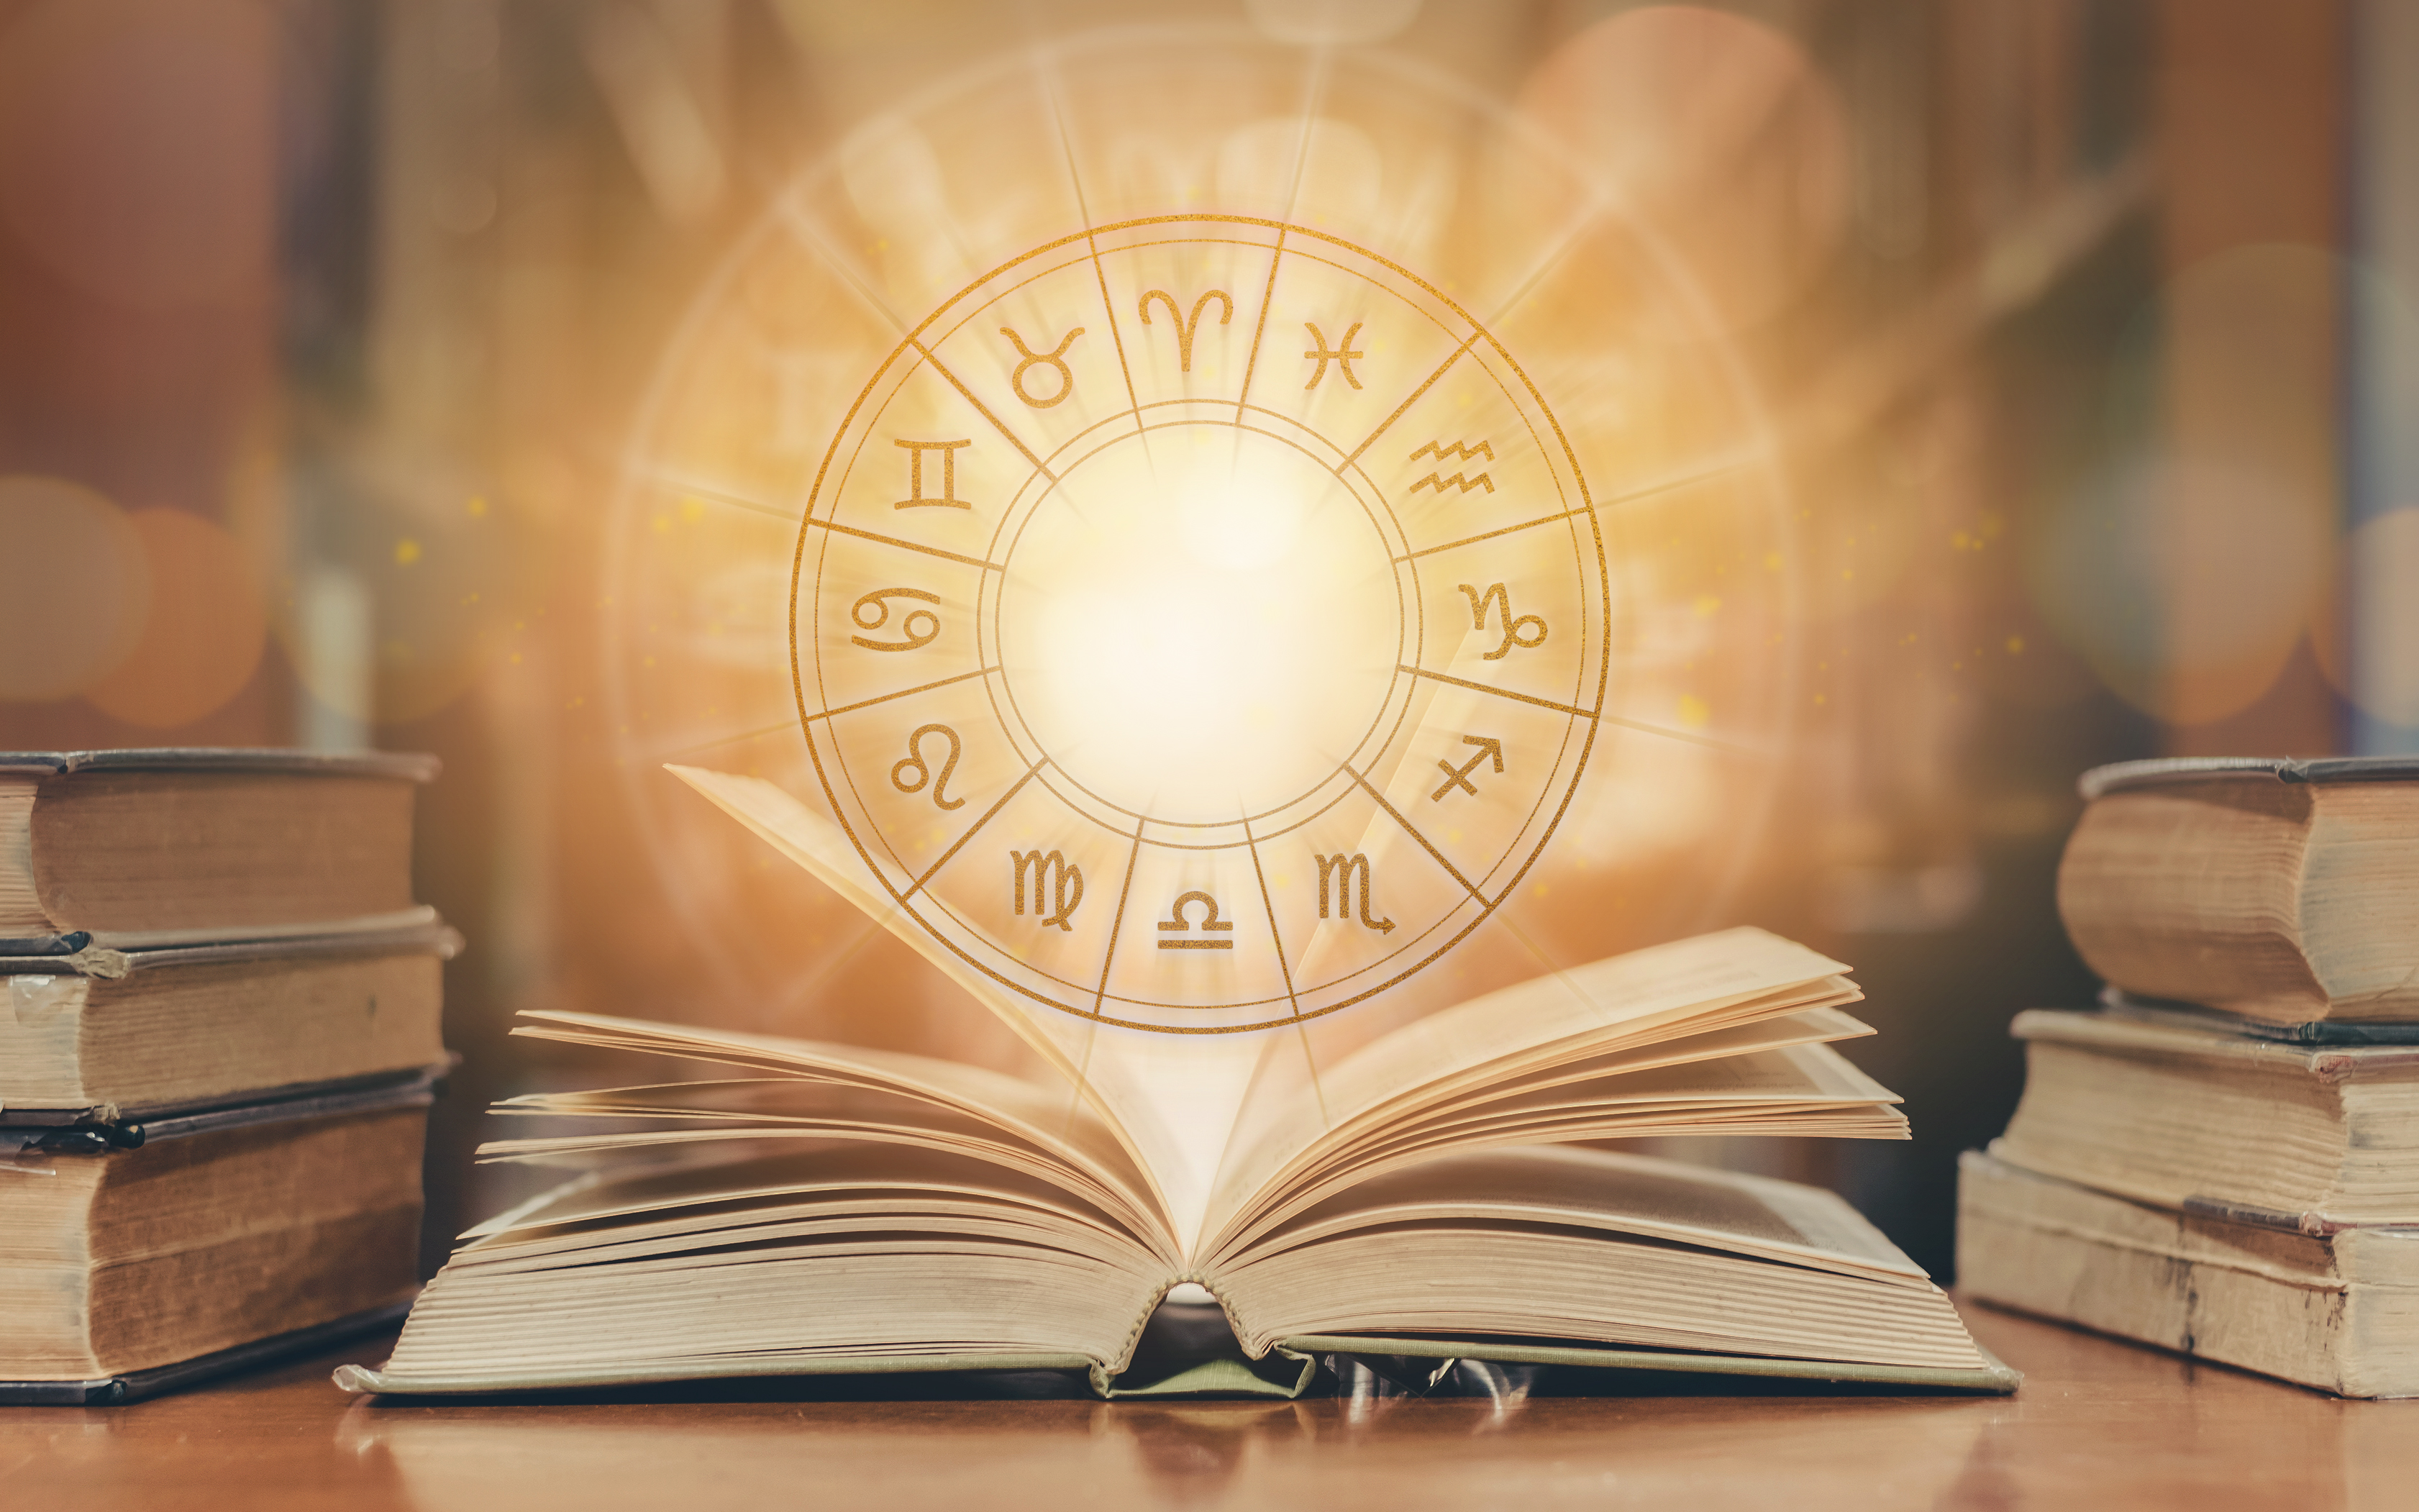 Astrological Chart and Book